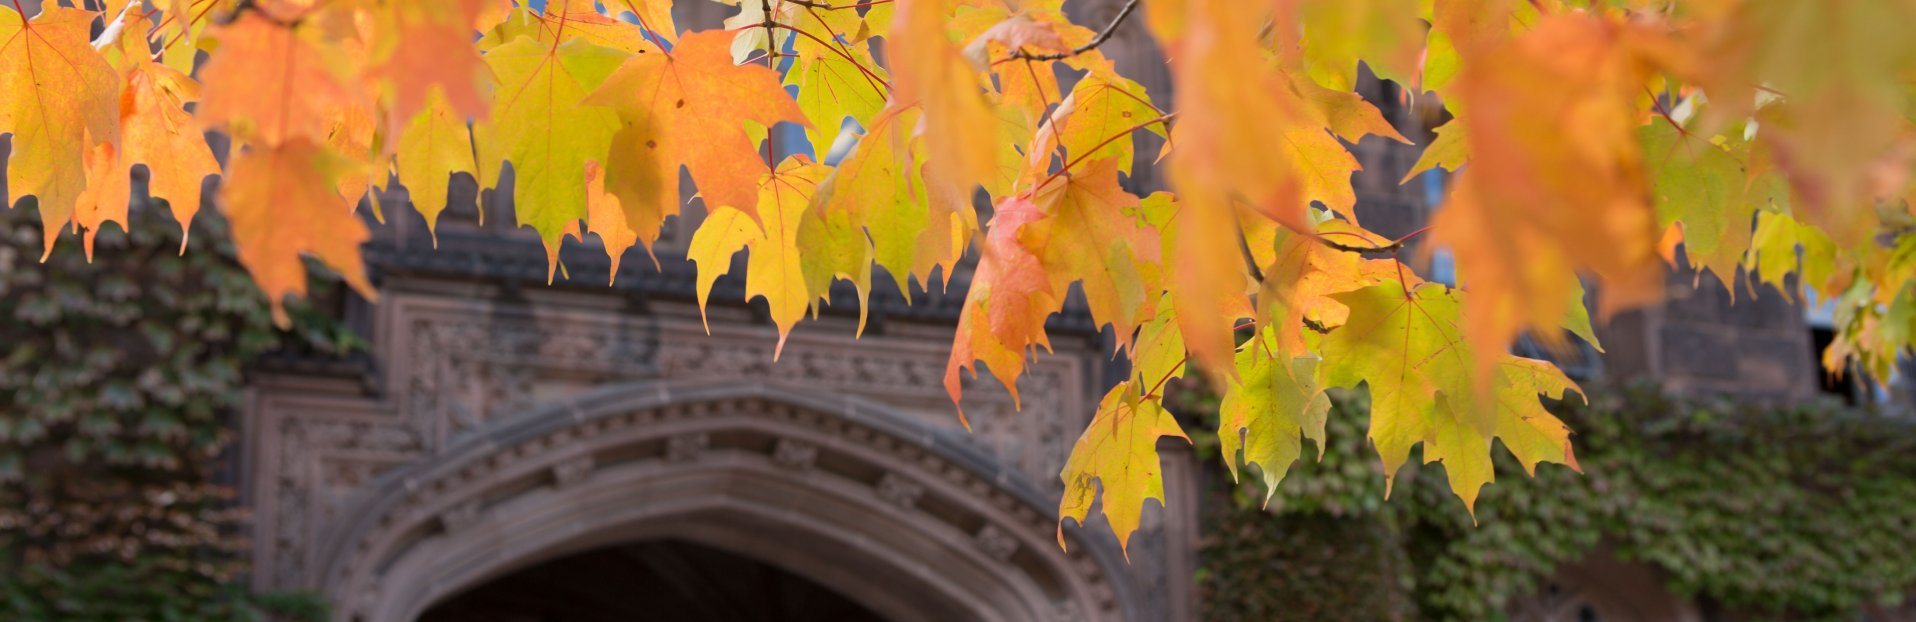 Image of fall foliage on the Princeton campus